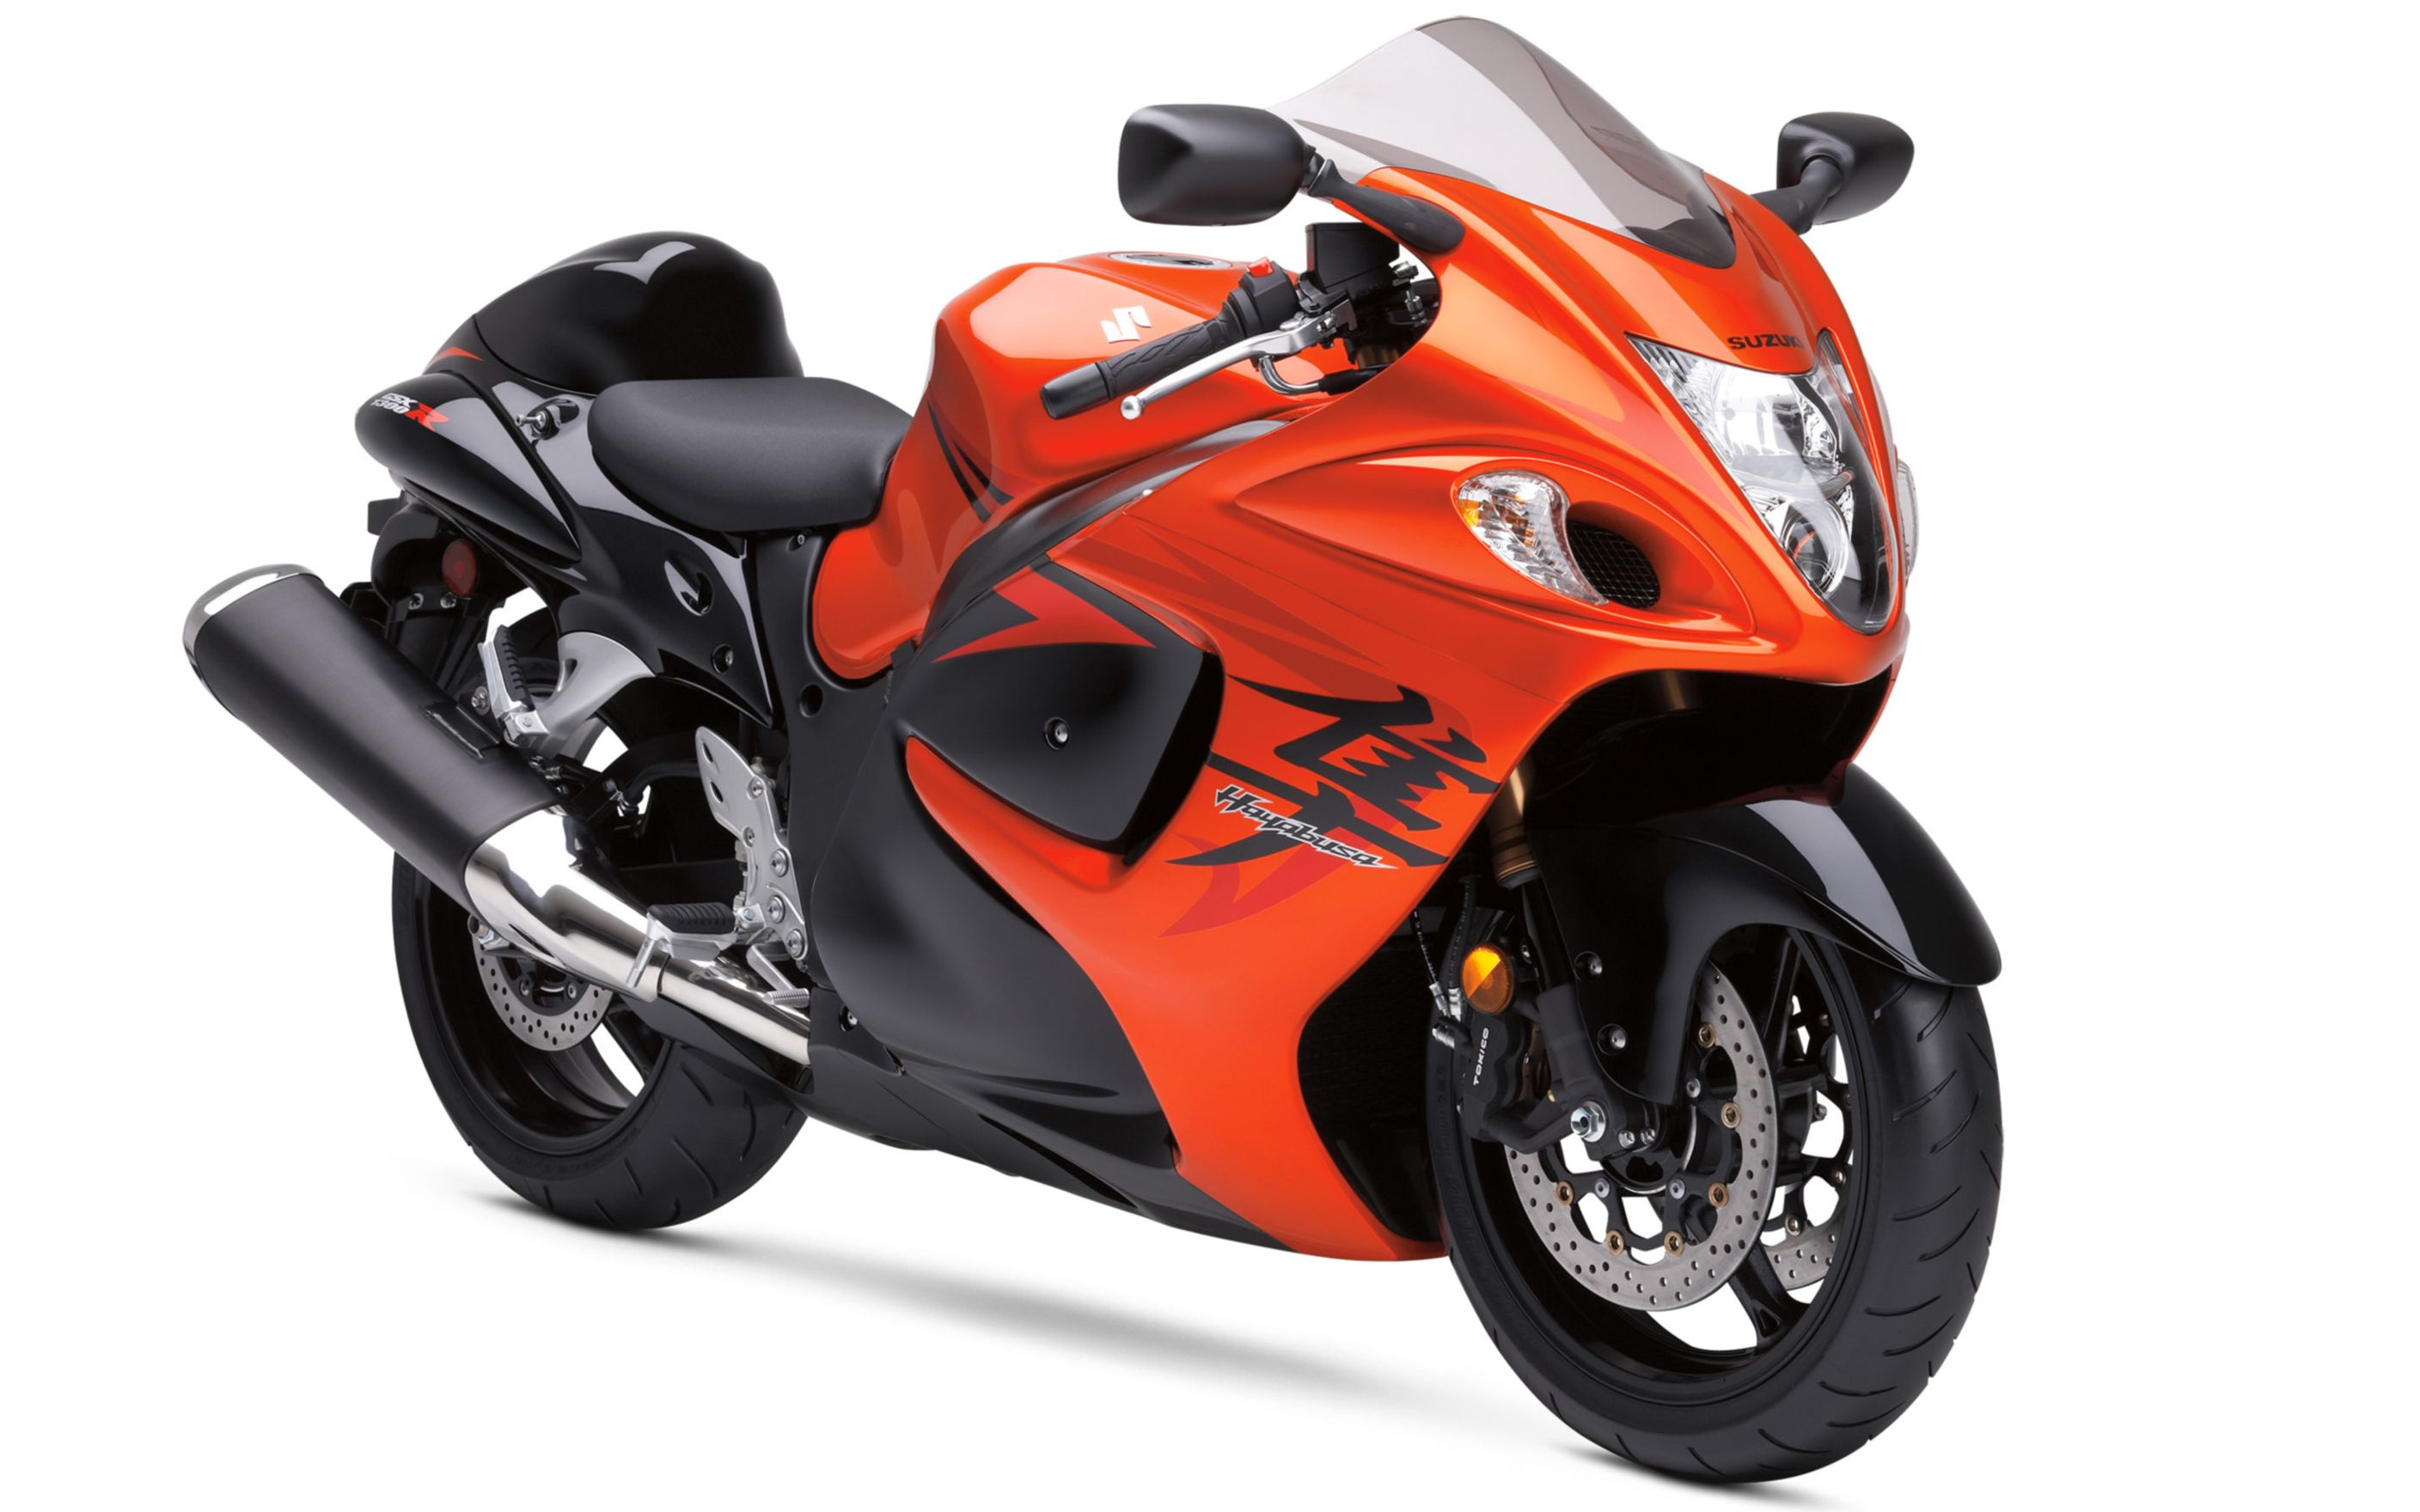 Download free HD Suzuki Hayabusa Orange Bike Wide Wallpaper, image